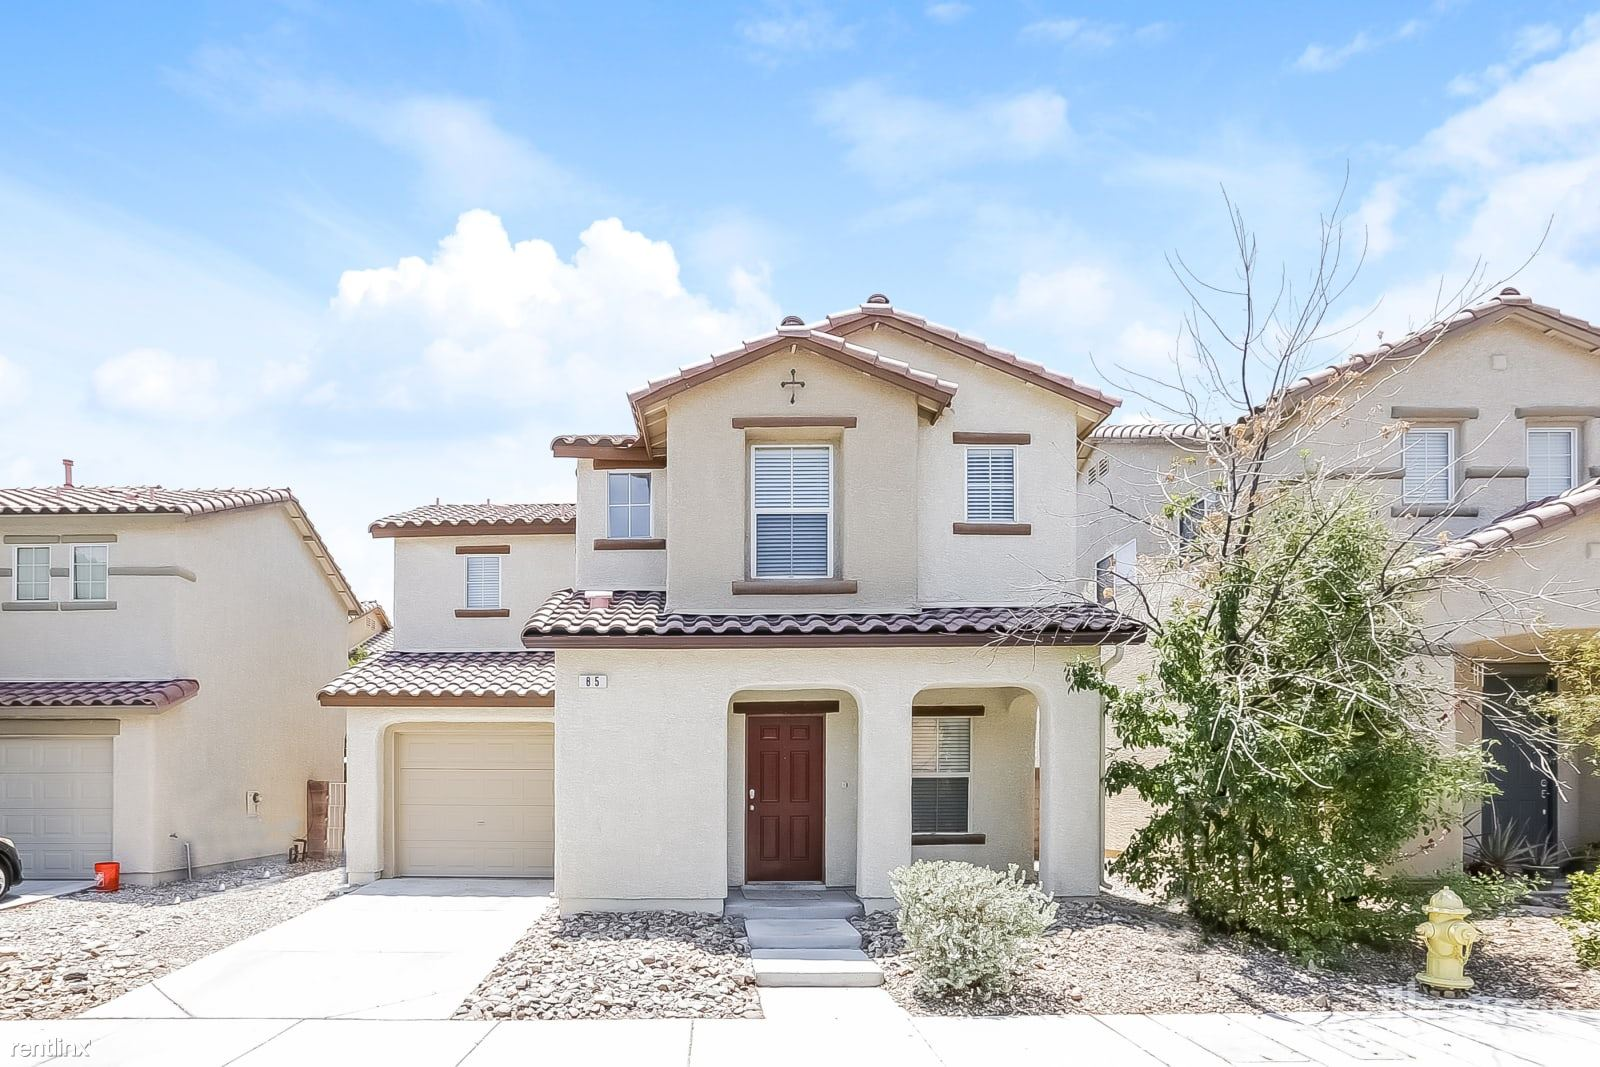 85 Peachtree Hill Avenue - 1949USD / month